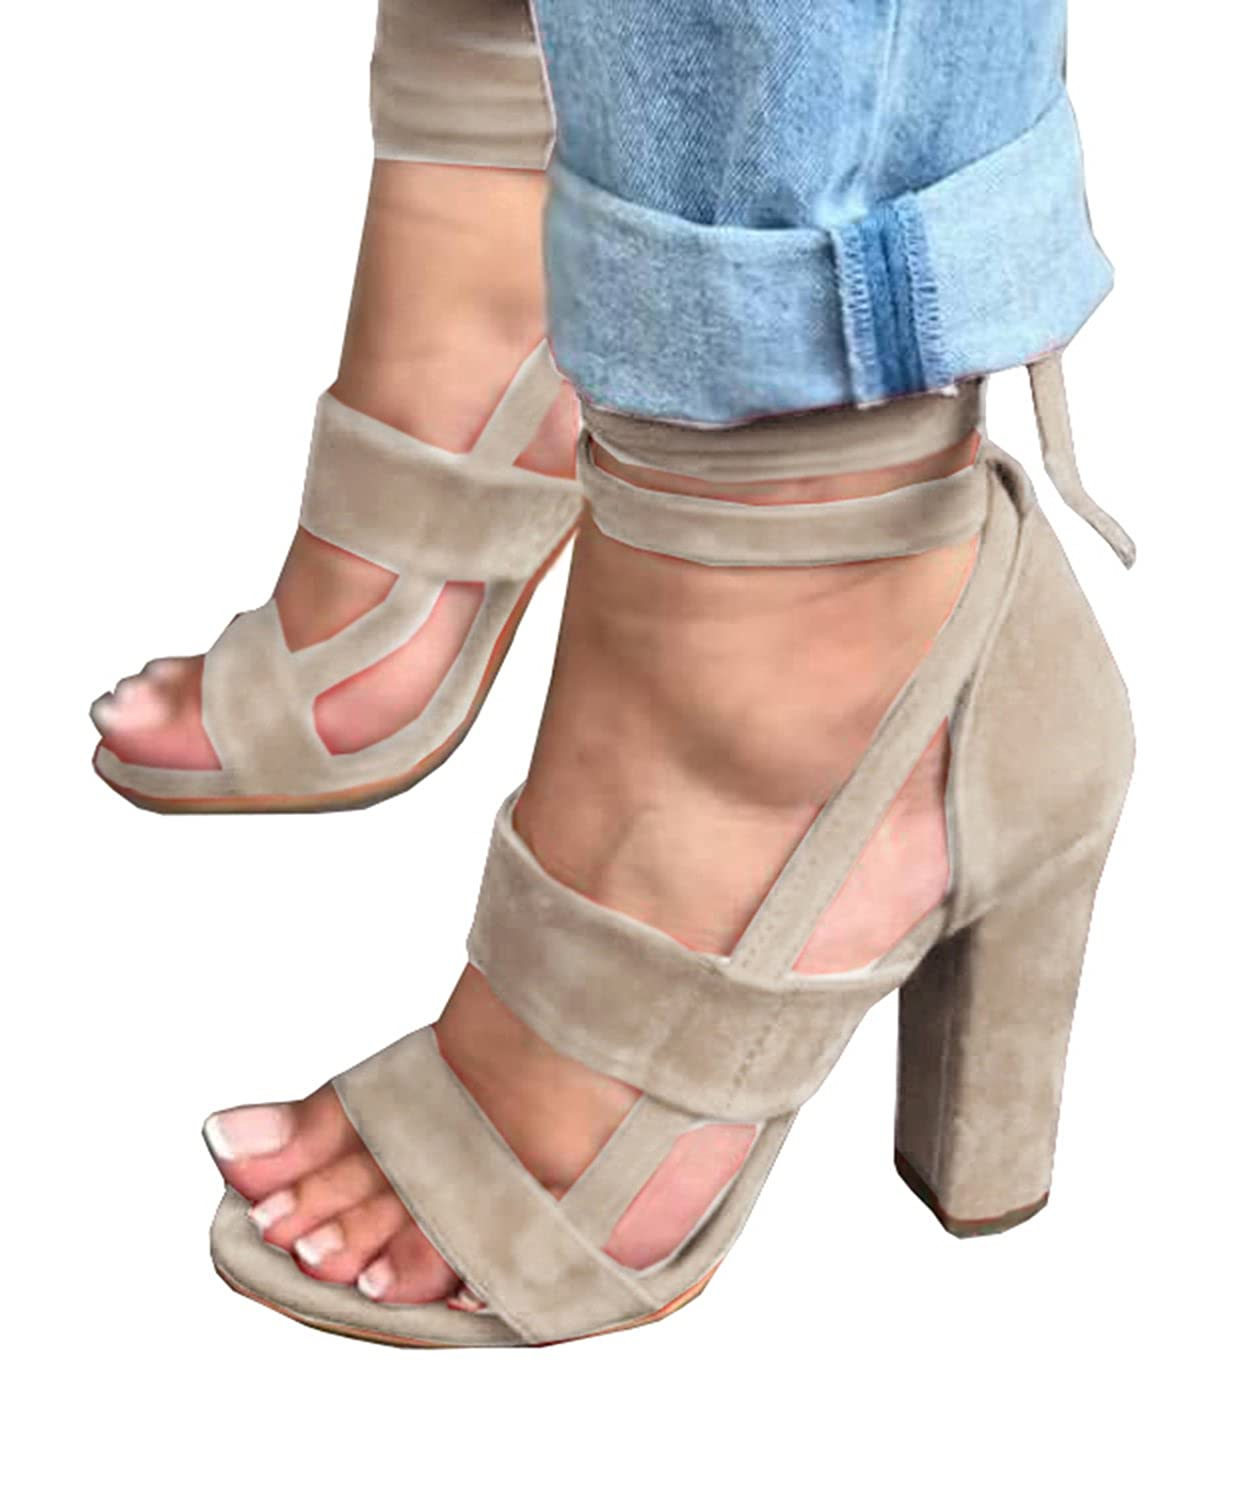 e120cfe6c0abb Amazon.com: Pxmoda Women's Lace Up Block Heel Strappy Sandals Ankle Strap  High Heels Pump Sandal: Clothing